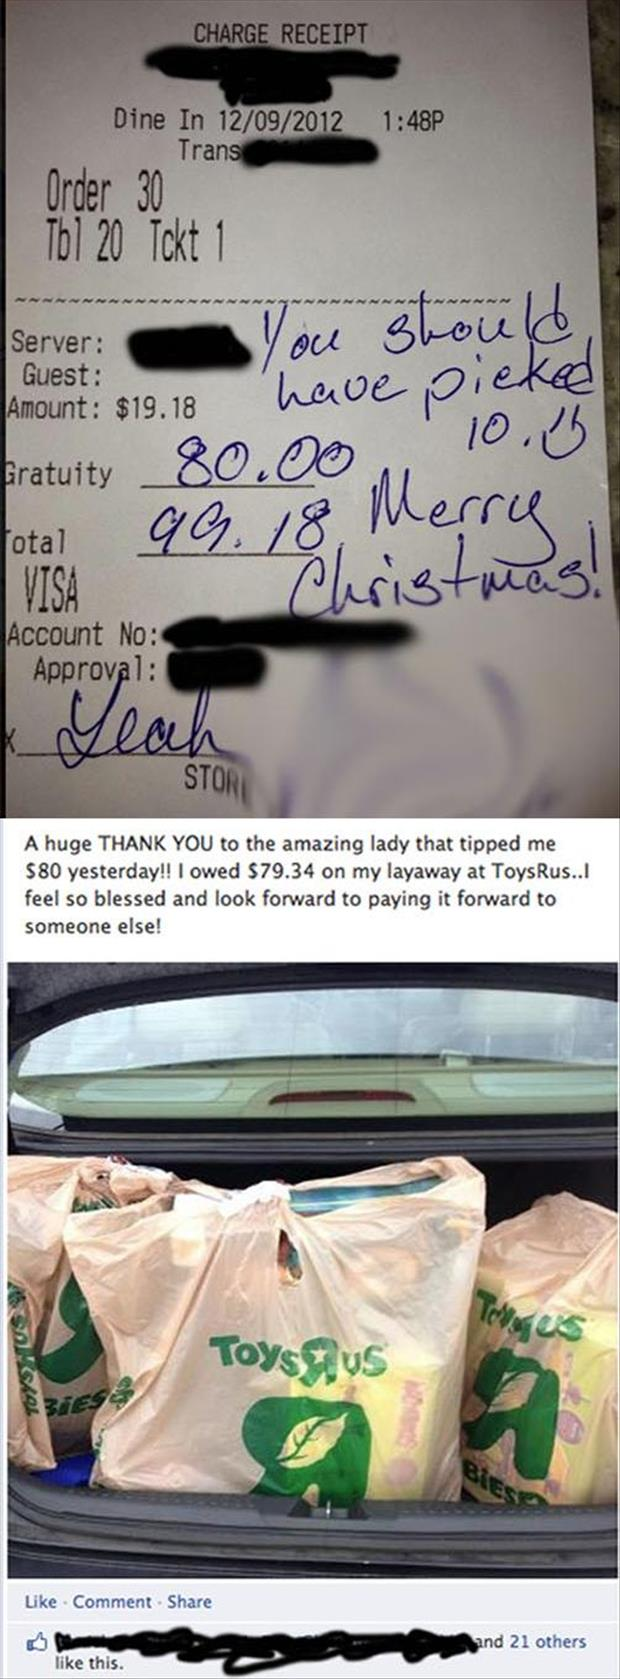 faith in humanity restored 1 (10)